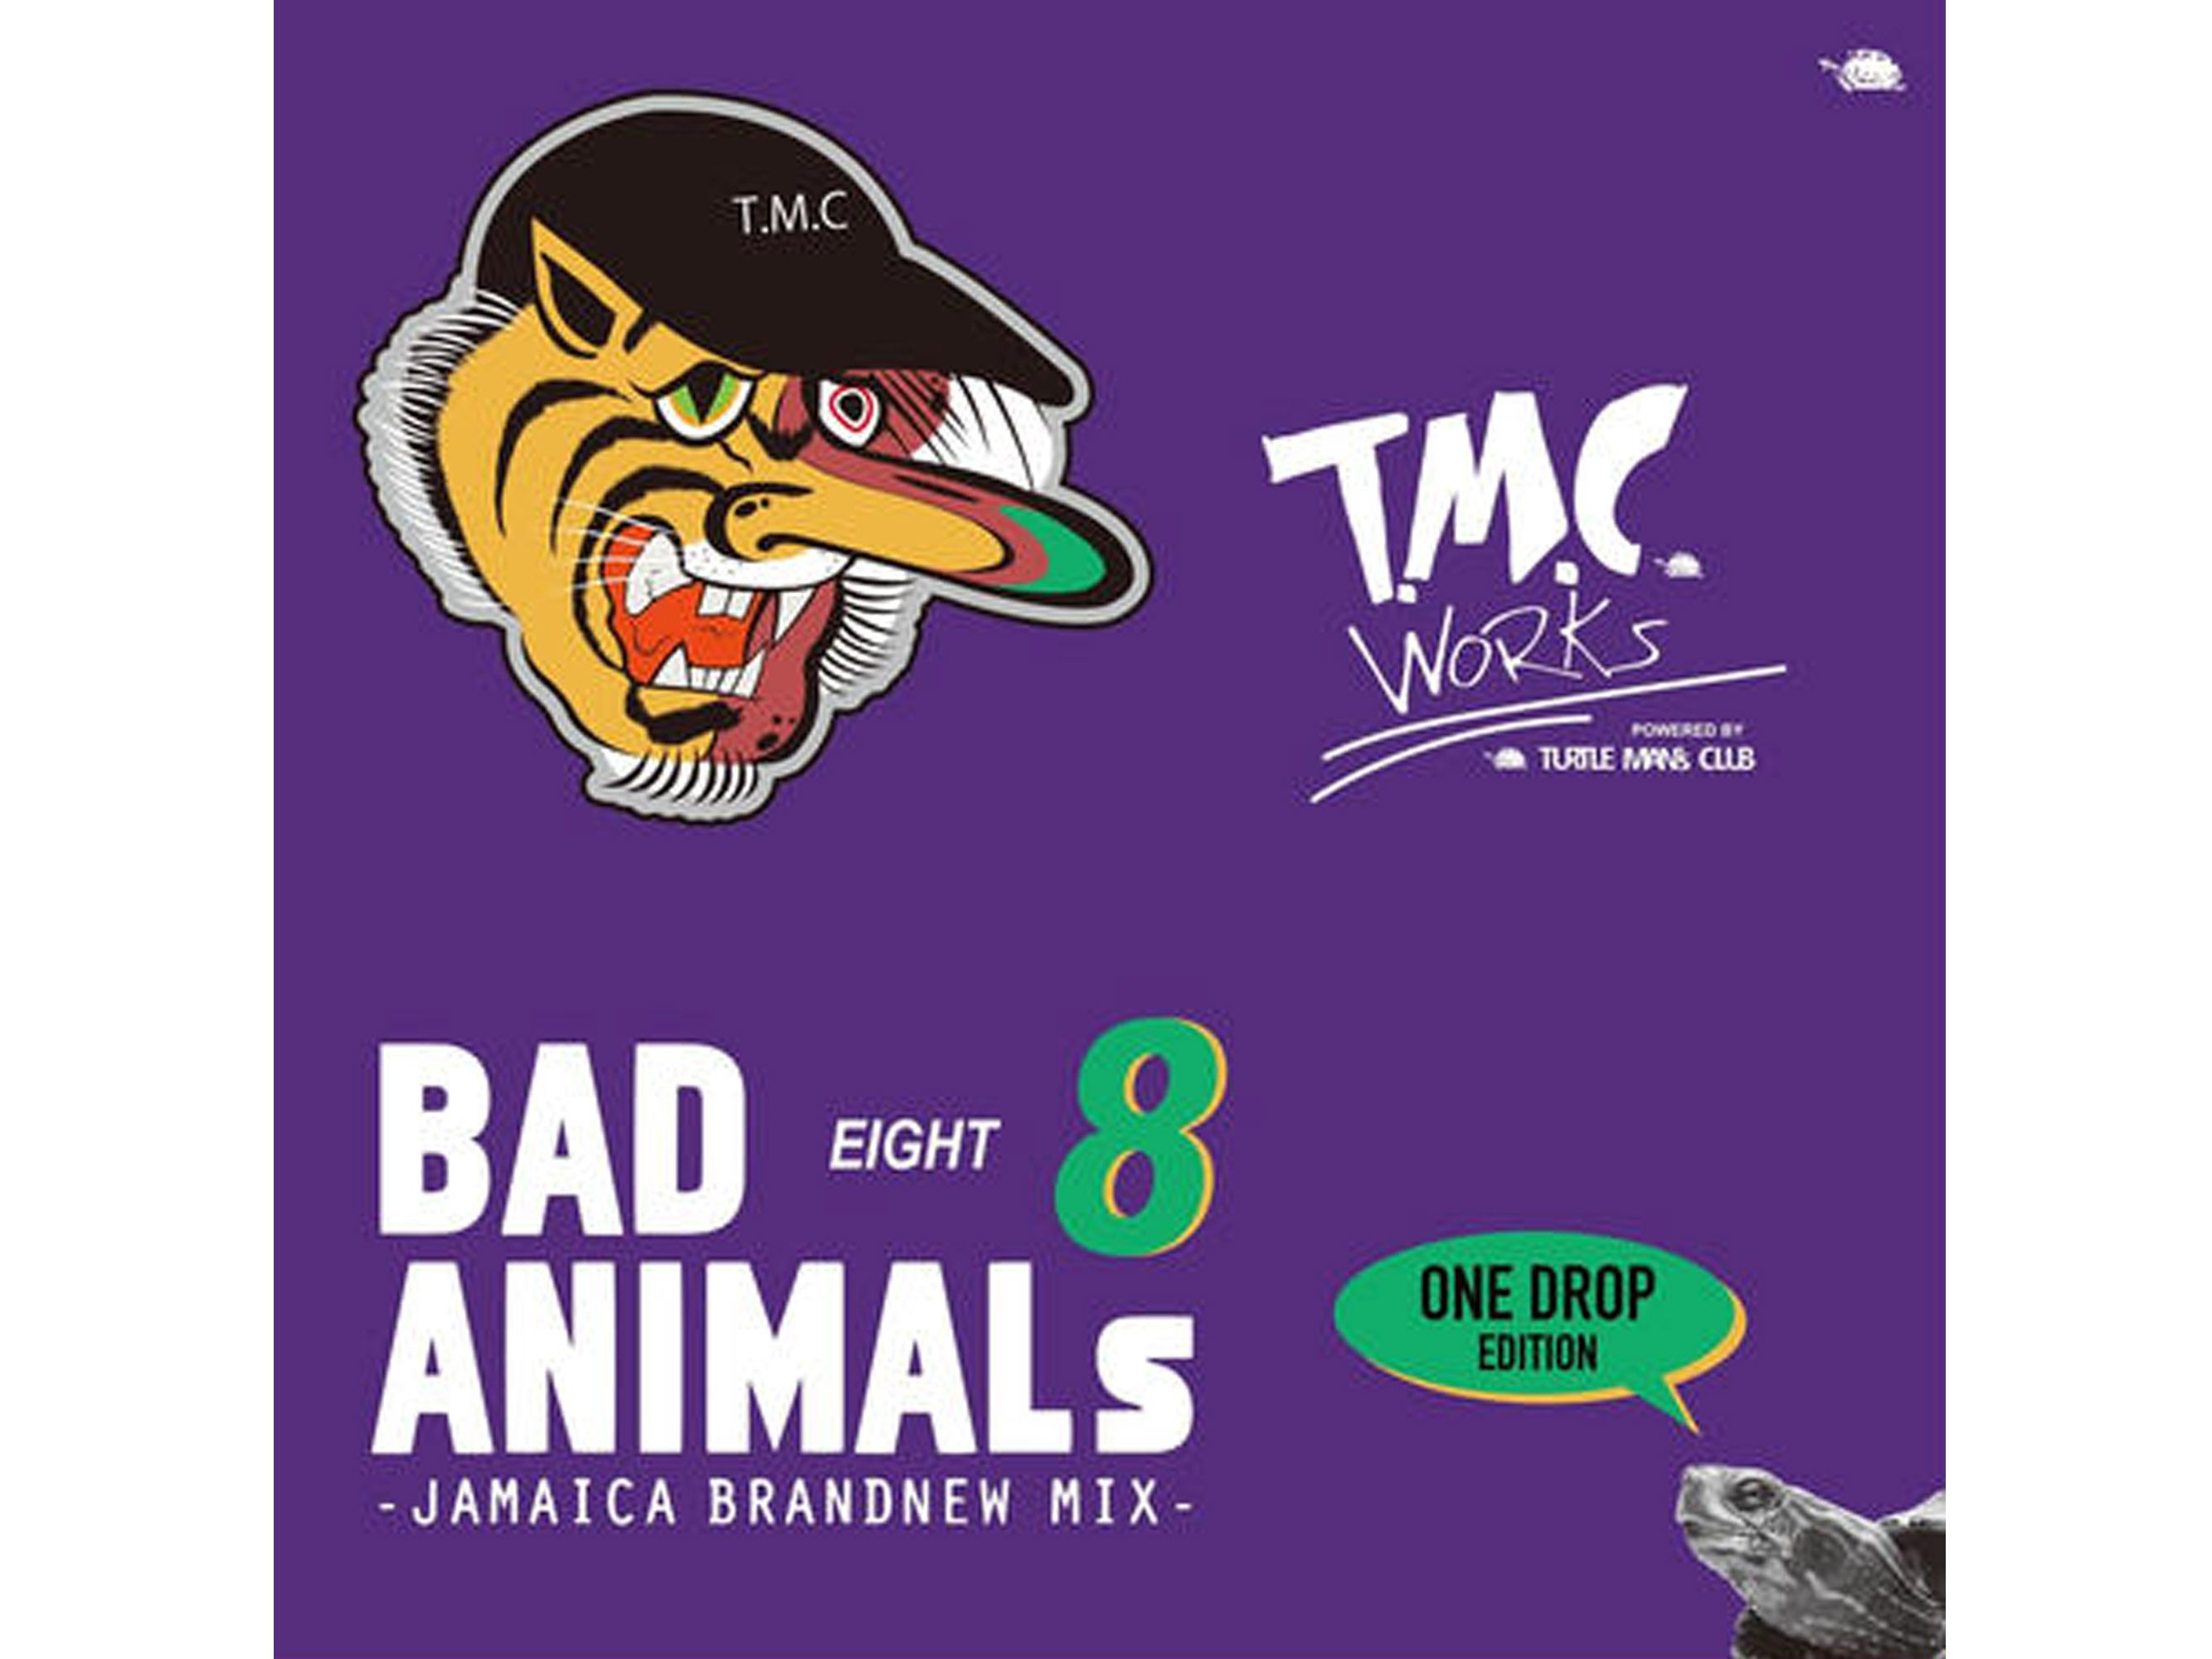 BAD ANIMALS 8  -T.M.C WORKS-